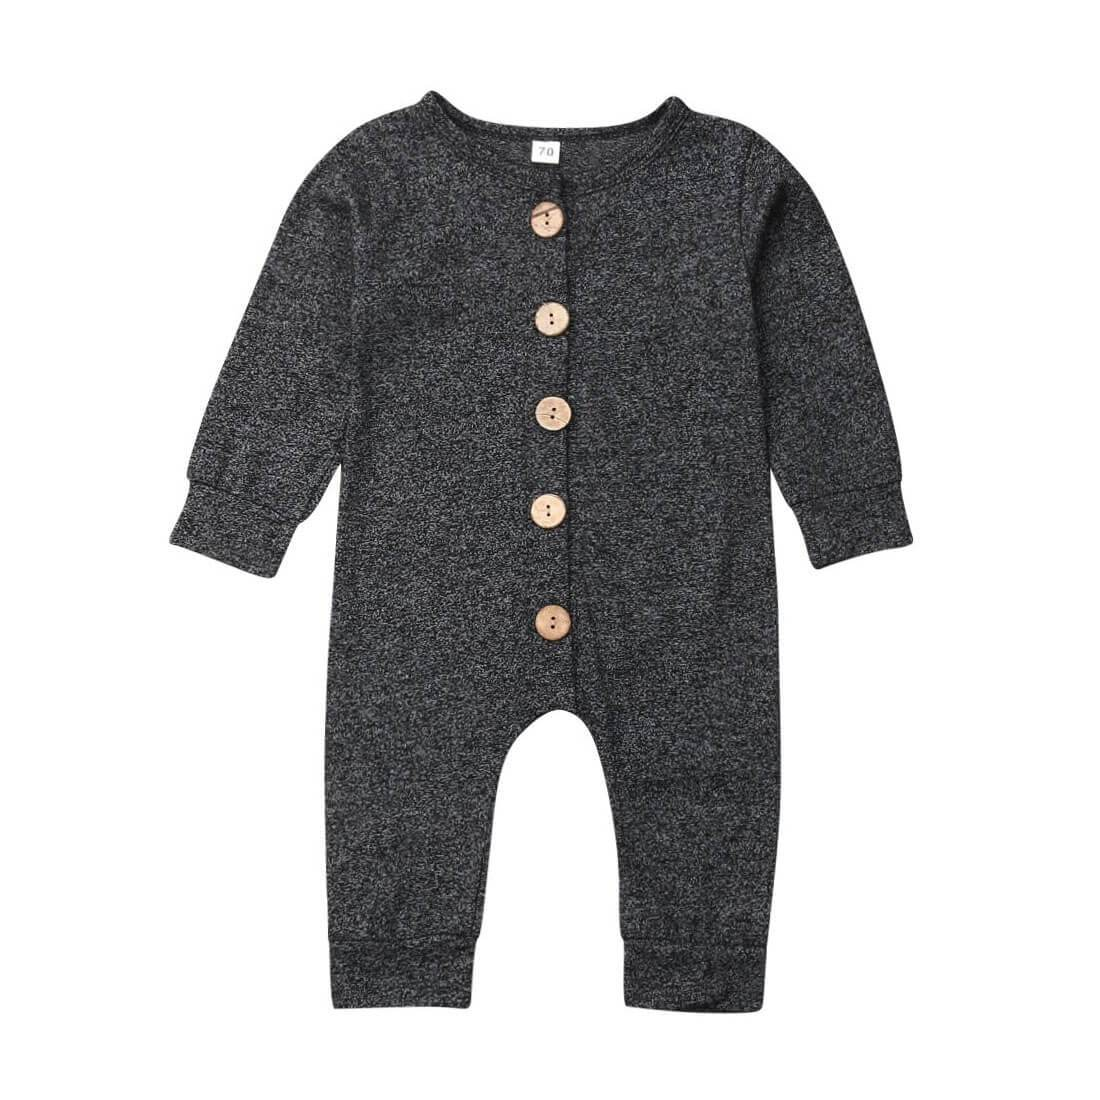 Long Sleeve Buttoned Jumpsuit - The Trendy Toddlers